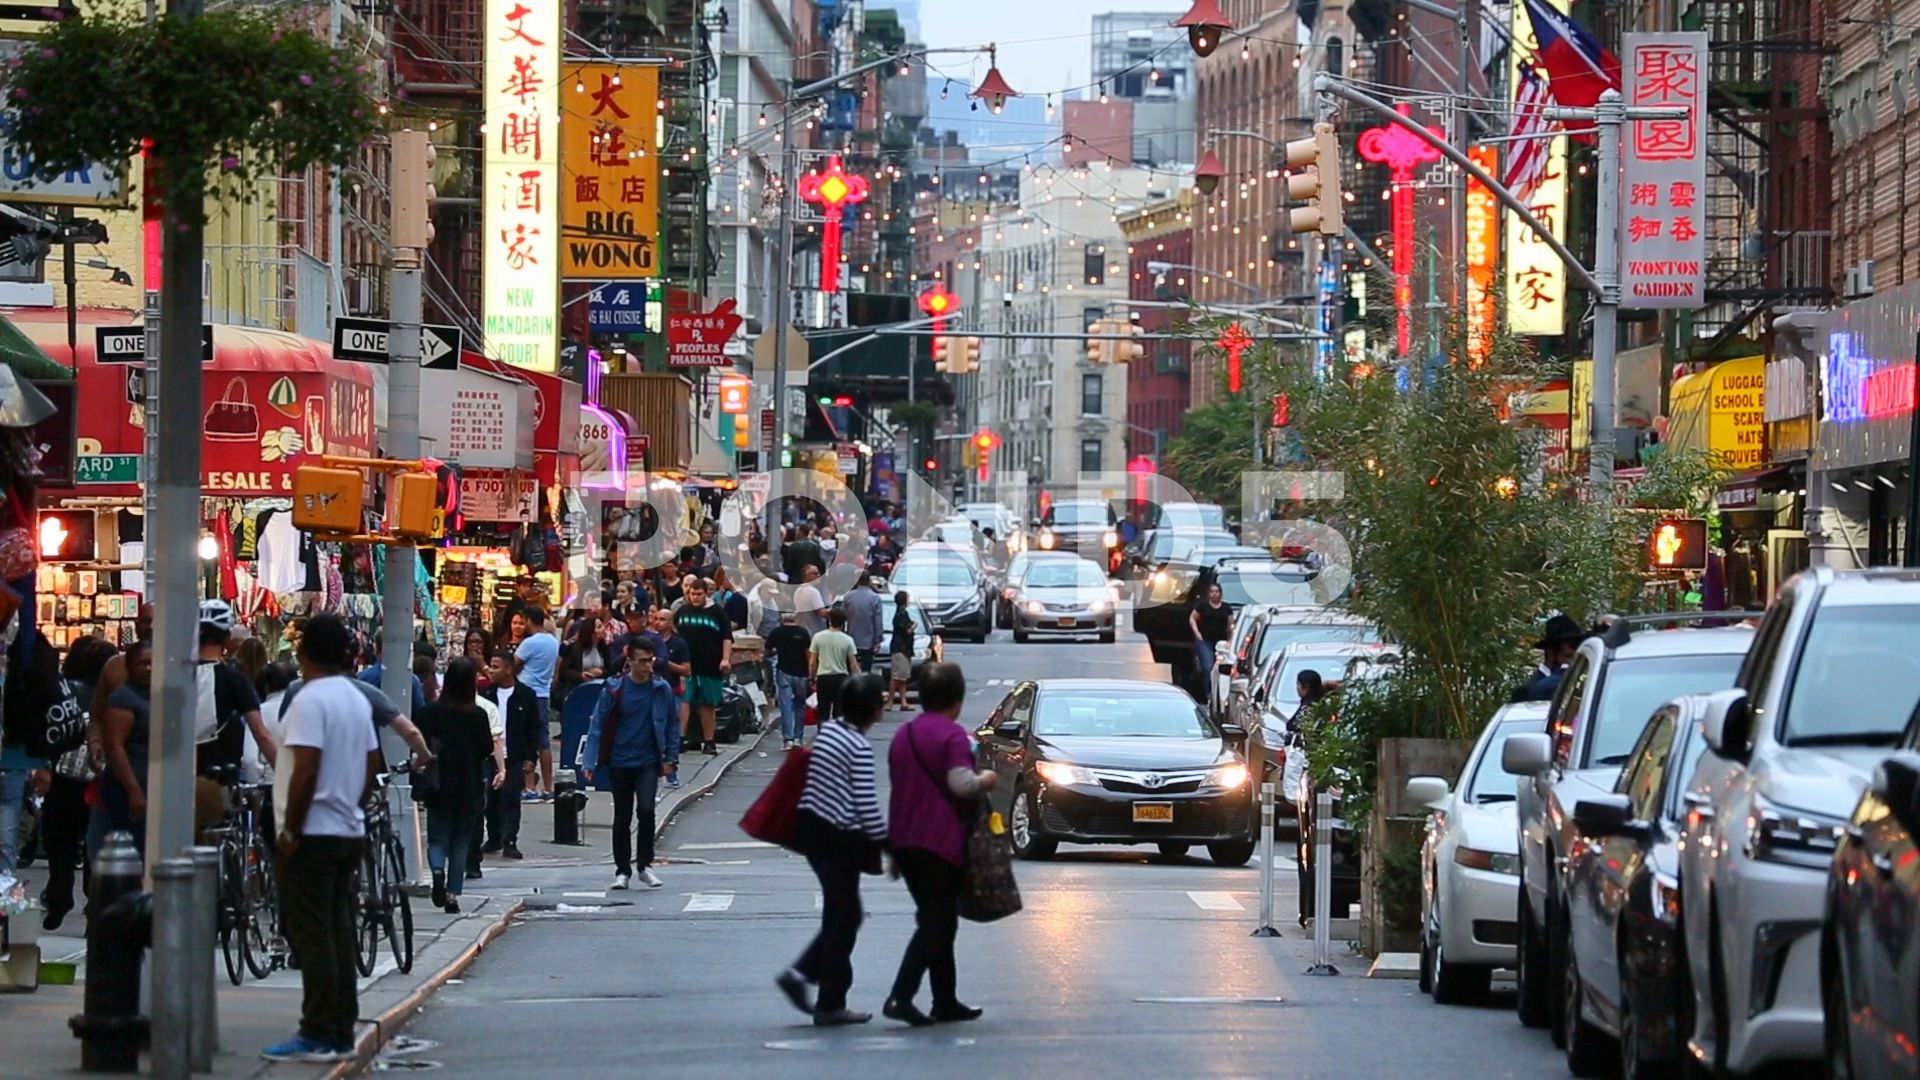 A Busy Street In Chinatown New York City Matching Day Shot